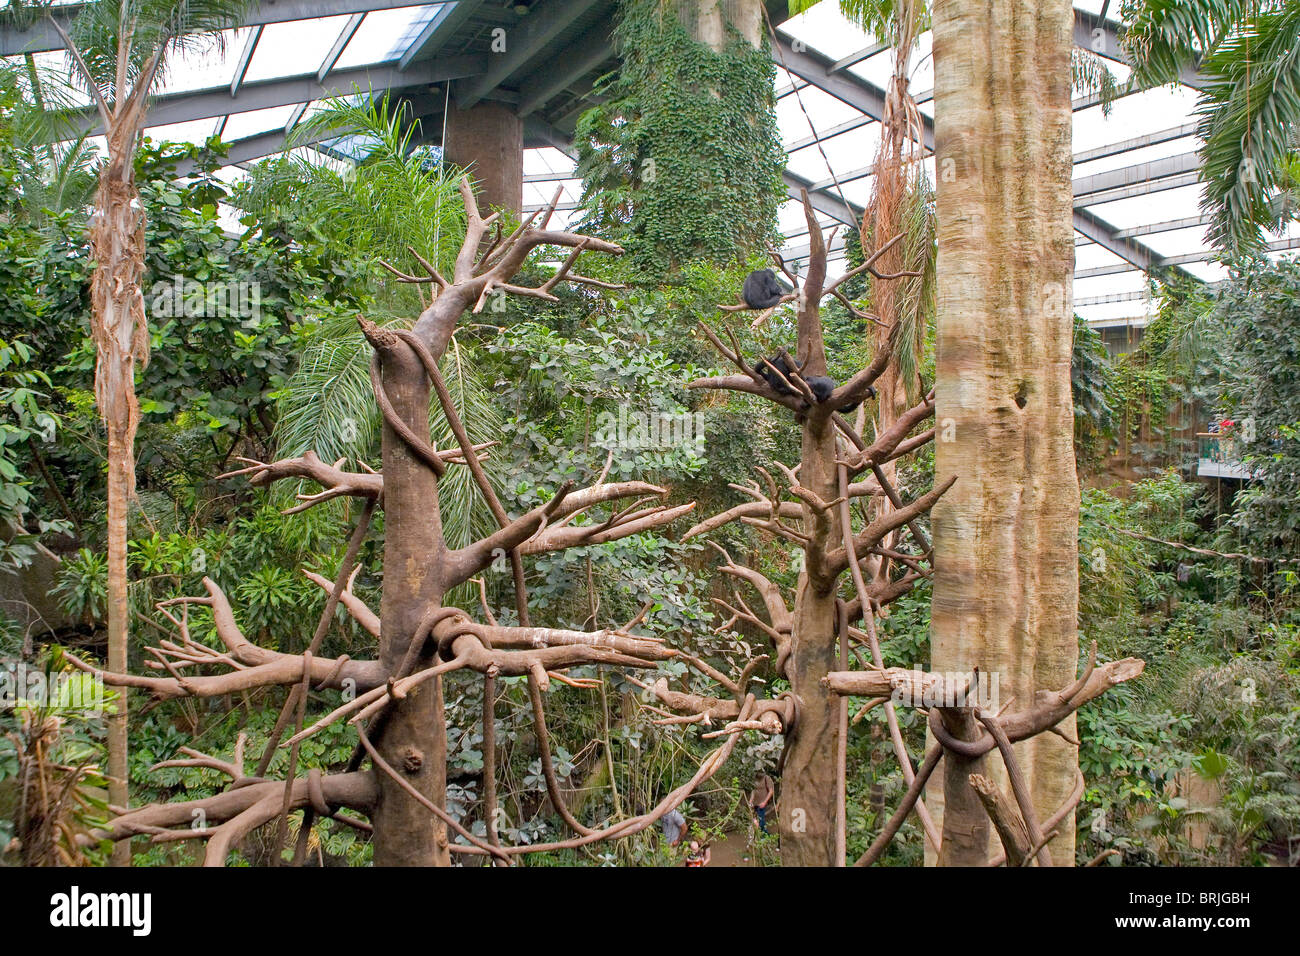 Henry Doorly Zoo - Lied Jungle Stock Photo, Royalty Free Image ...